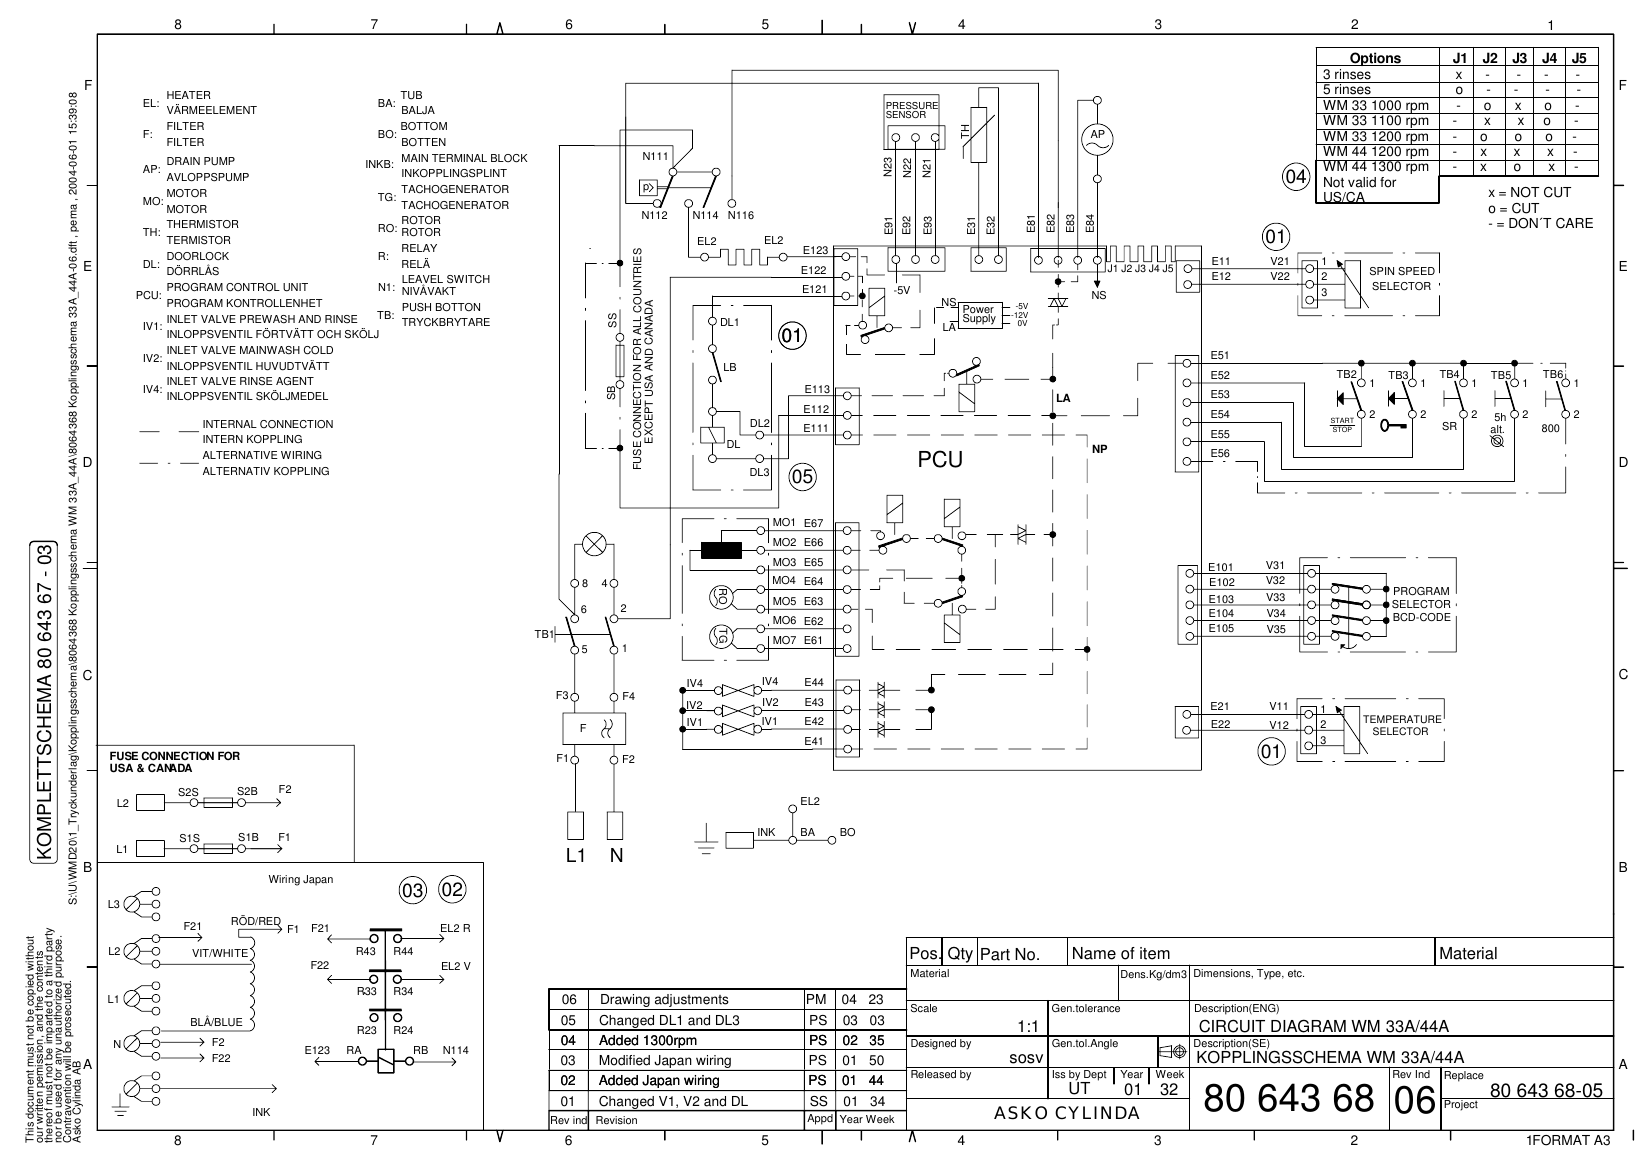 Wiring Diagram For Asko Dishwasher Diagrams Data Base Washing Machine Electrical Parts Wire Rh Maerkang Org On 8064368 Kopplingsschema 33a 44a 06 Dft